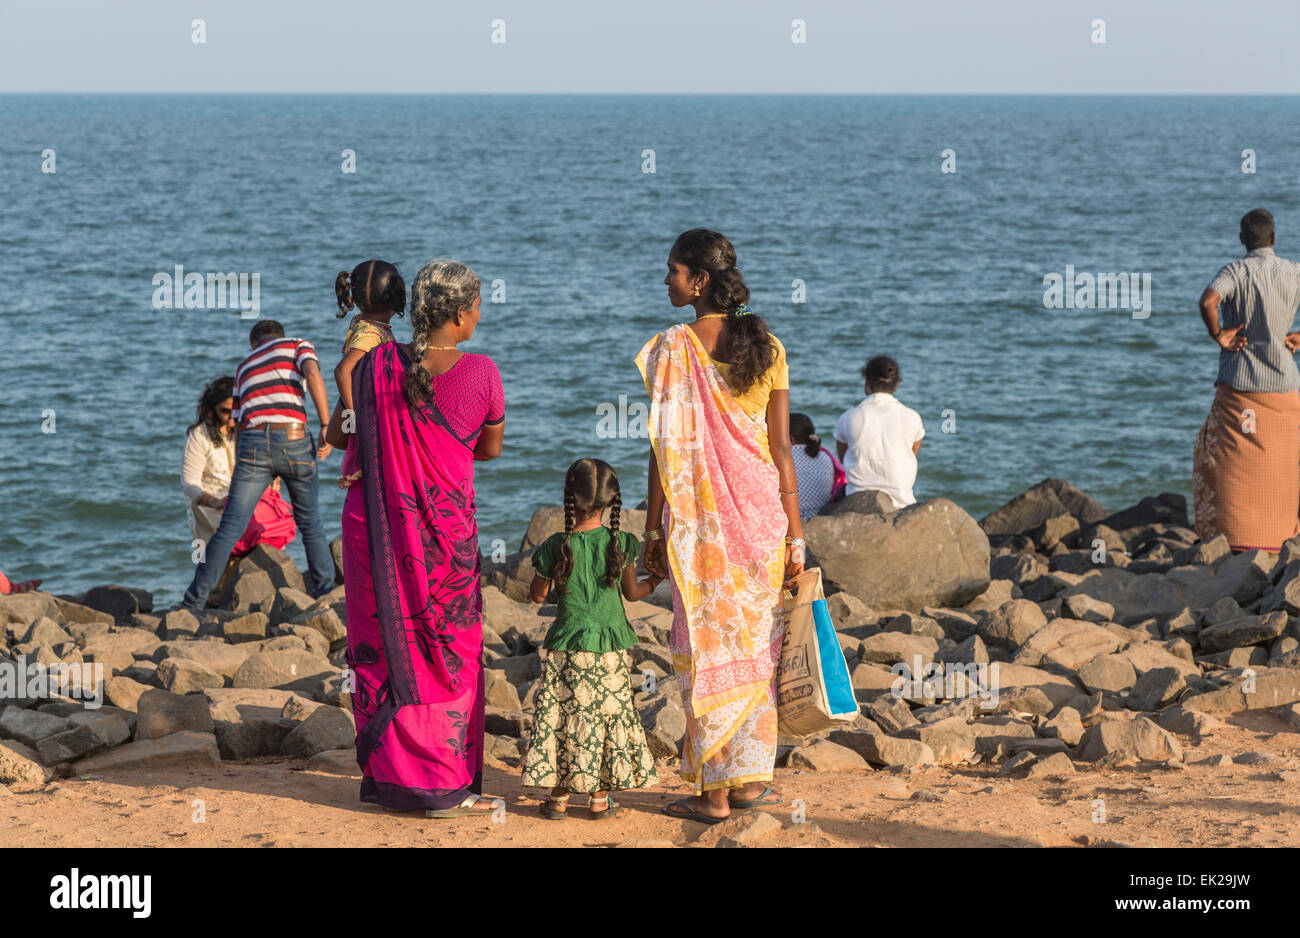 La familia indígena local en la playa en Pondicherry, o Puducherry, Tamil Nadu, en el sur de la India Imagen De Stock